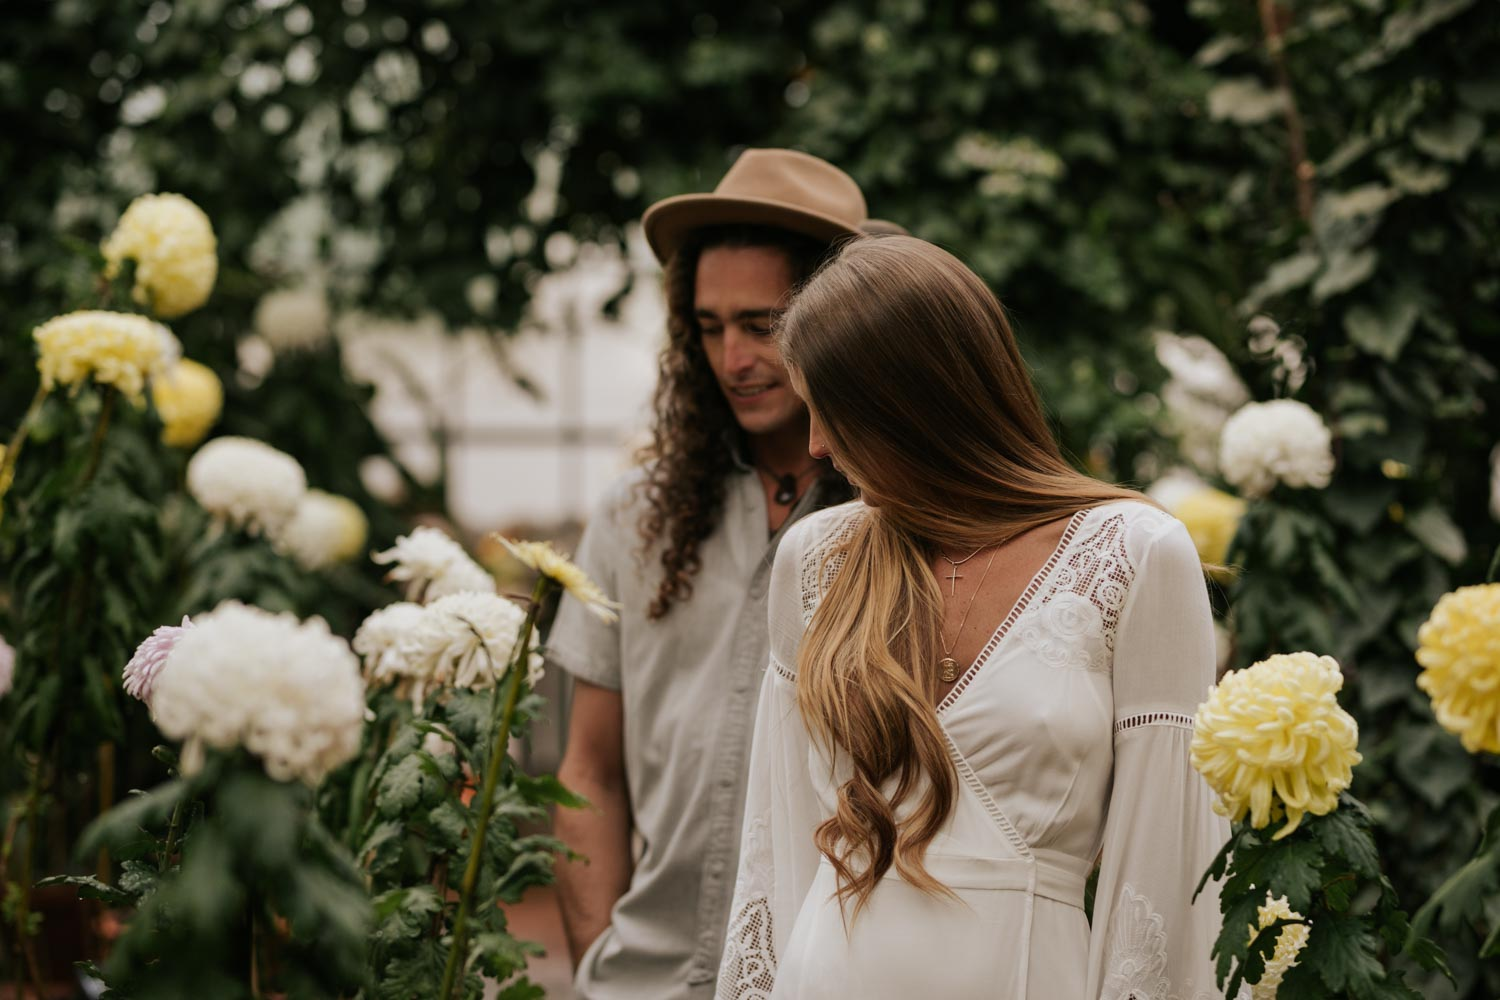 Boho Wedding At Babylonstoren In Greenhouse With Flowers And Plants